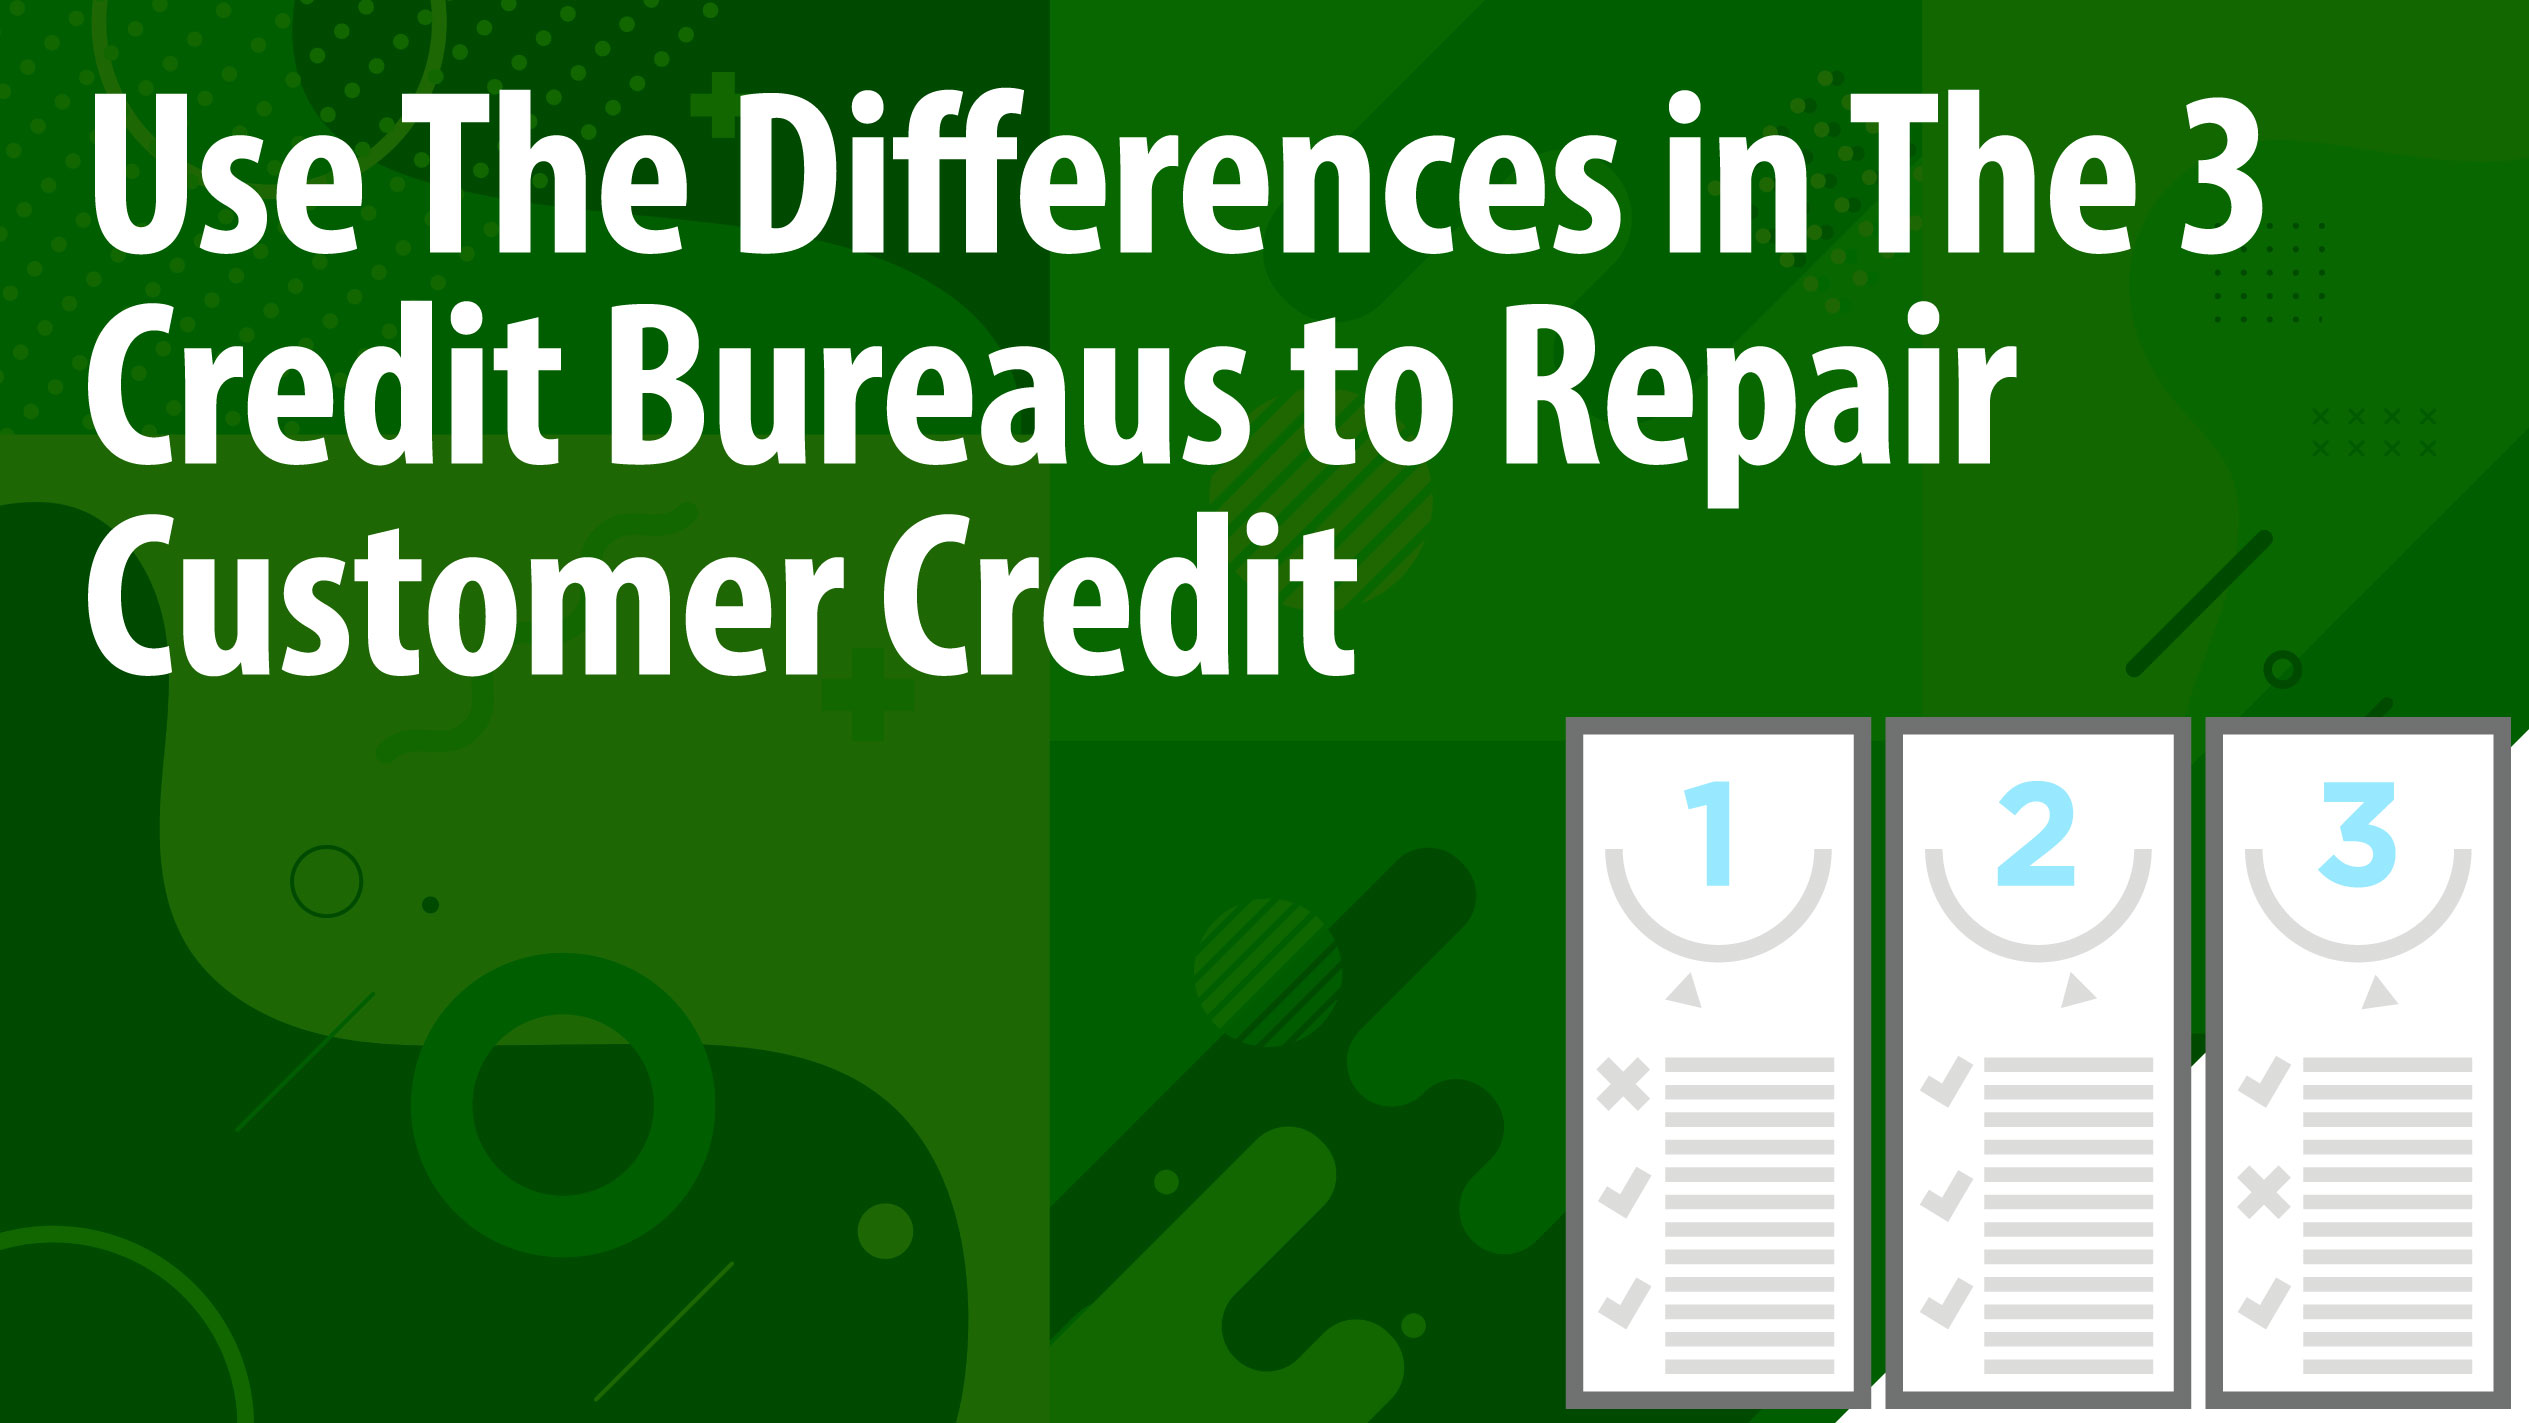 Use The Differences in The 3 Credit Bureaus to Repair Customer Credit